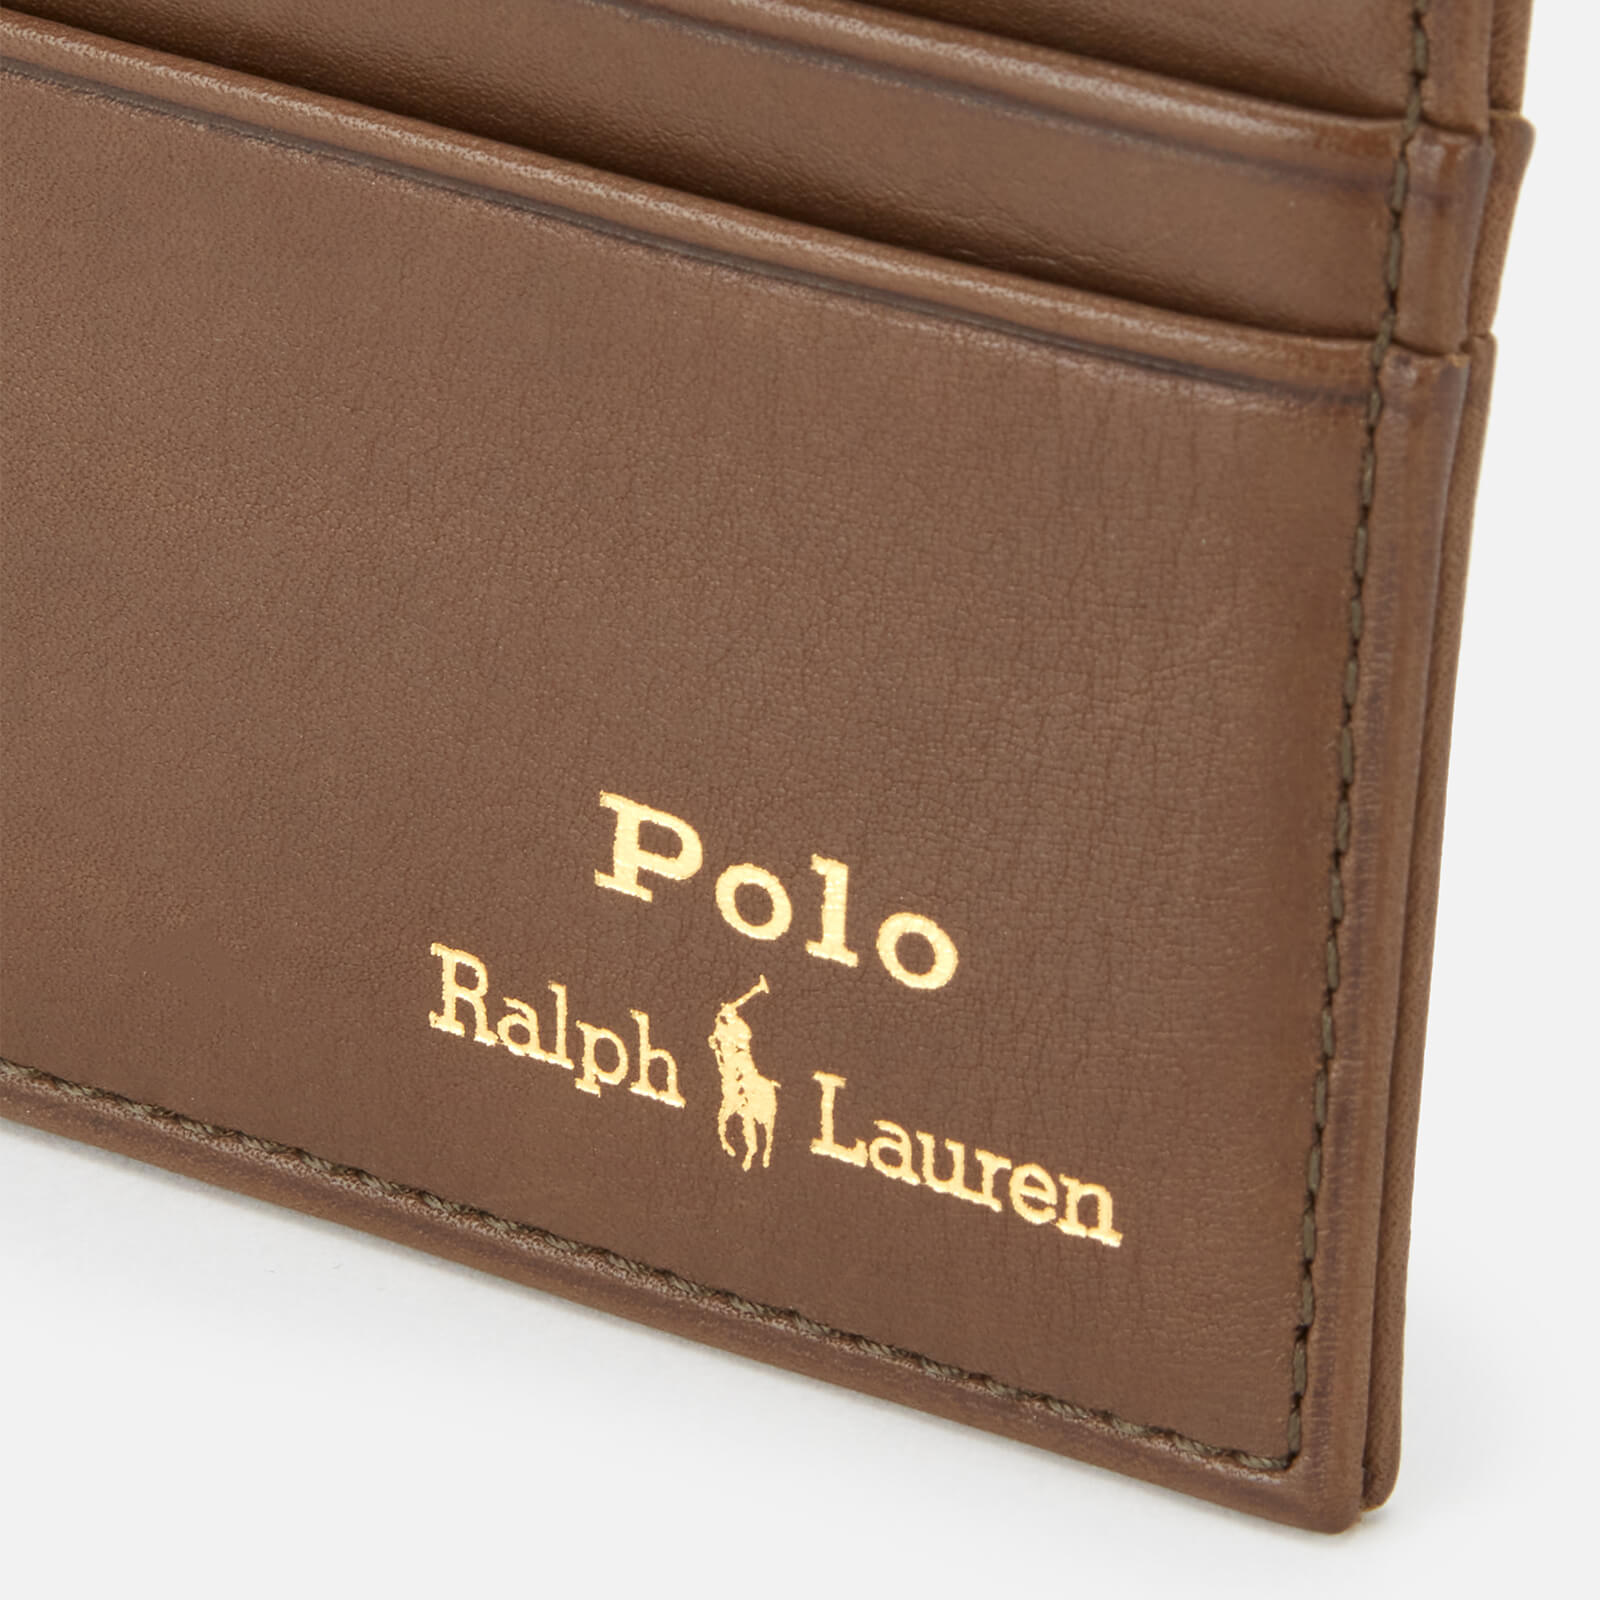 polo ralph lauren men's smooth leather cardholder - olive